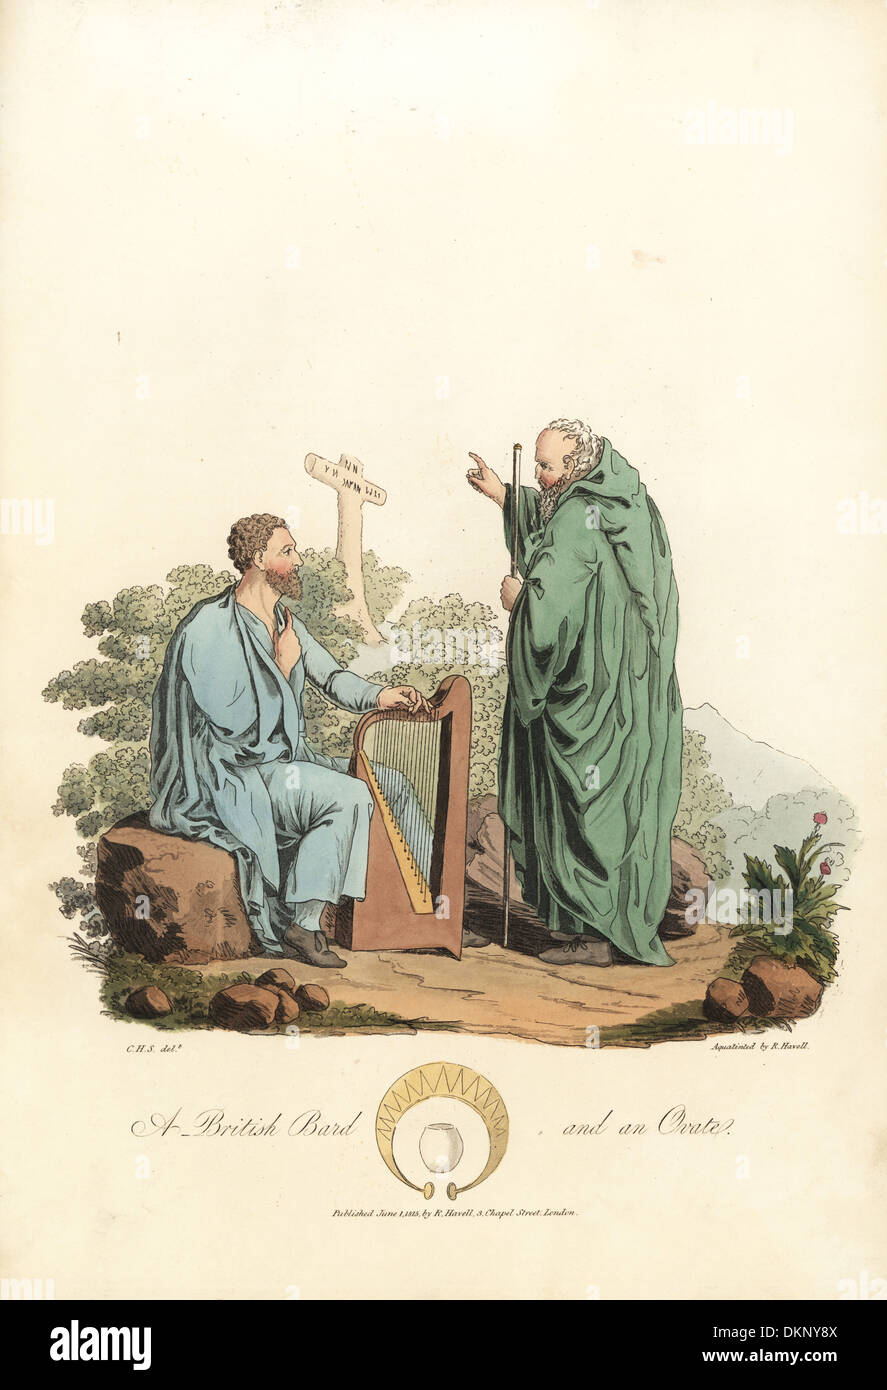 British Bard and an Ovate, Druidic priests, of the pre-Roman era. - Stock Image